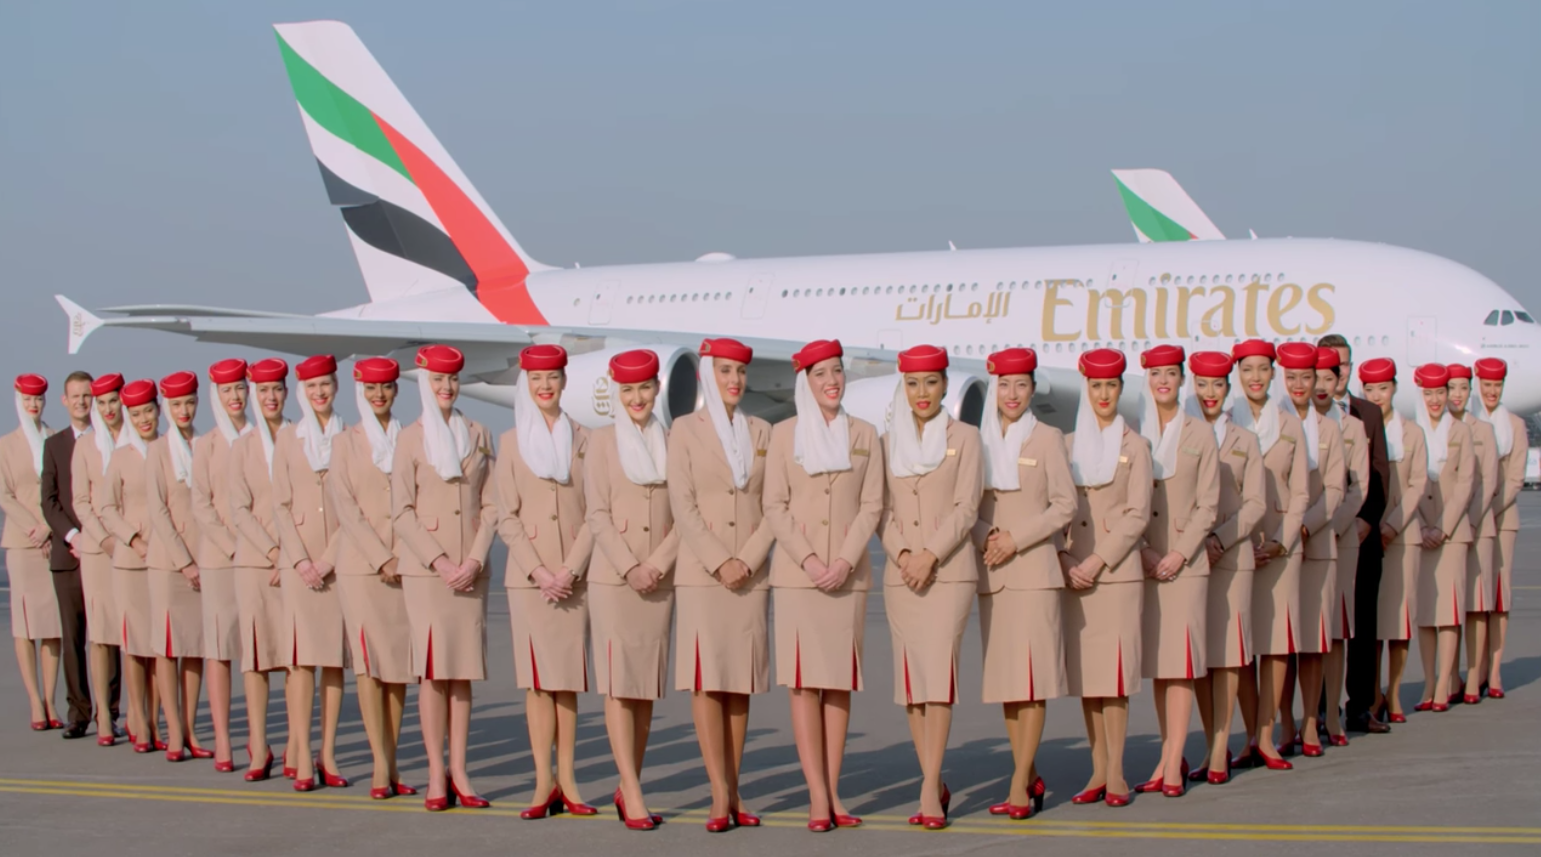 Emirates A380 Aircraft & Flight Attendants